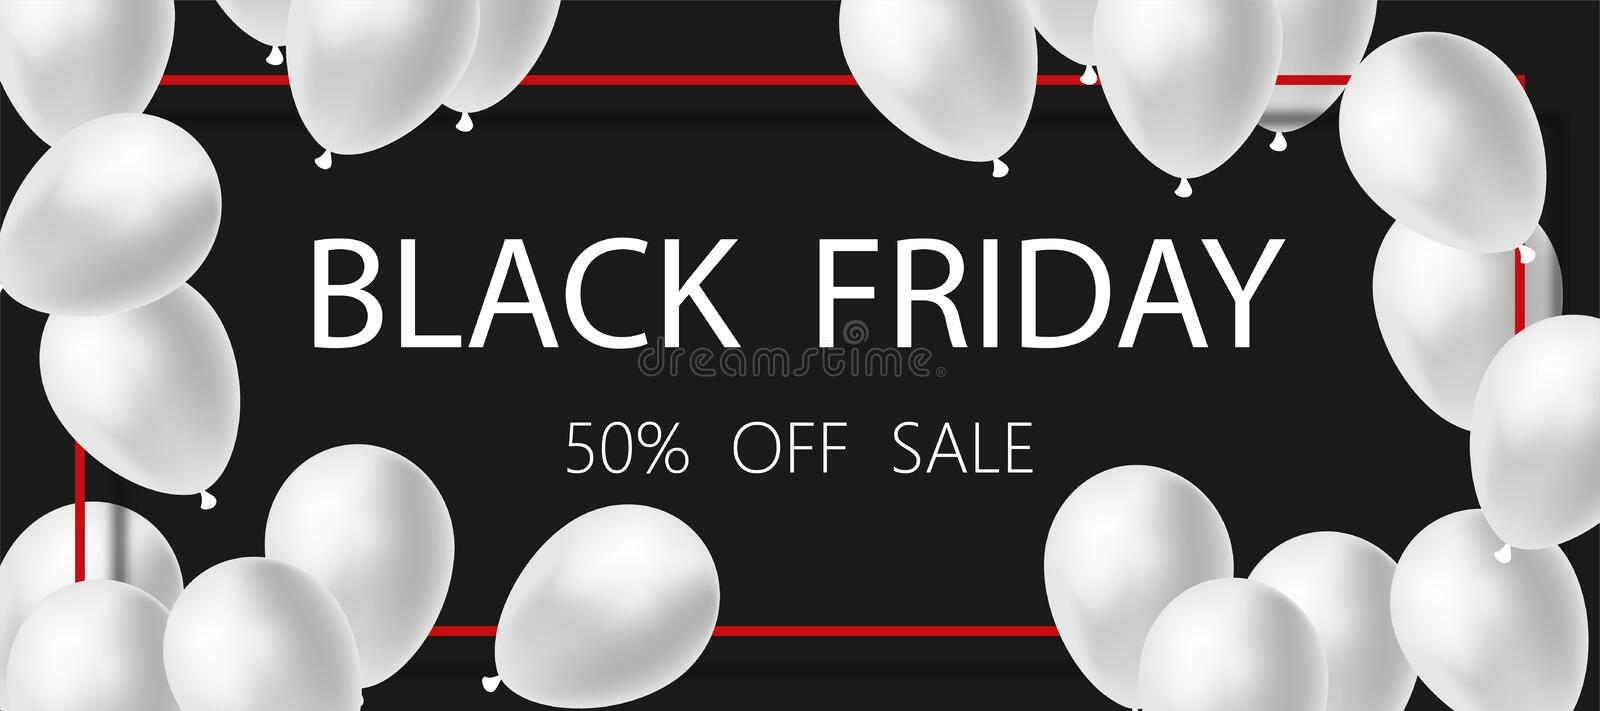 Poster or Banner Black Friday Sale. White balloons on black background. 50 % OFF Sale royalty free illustration